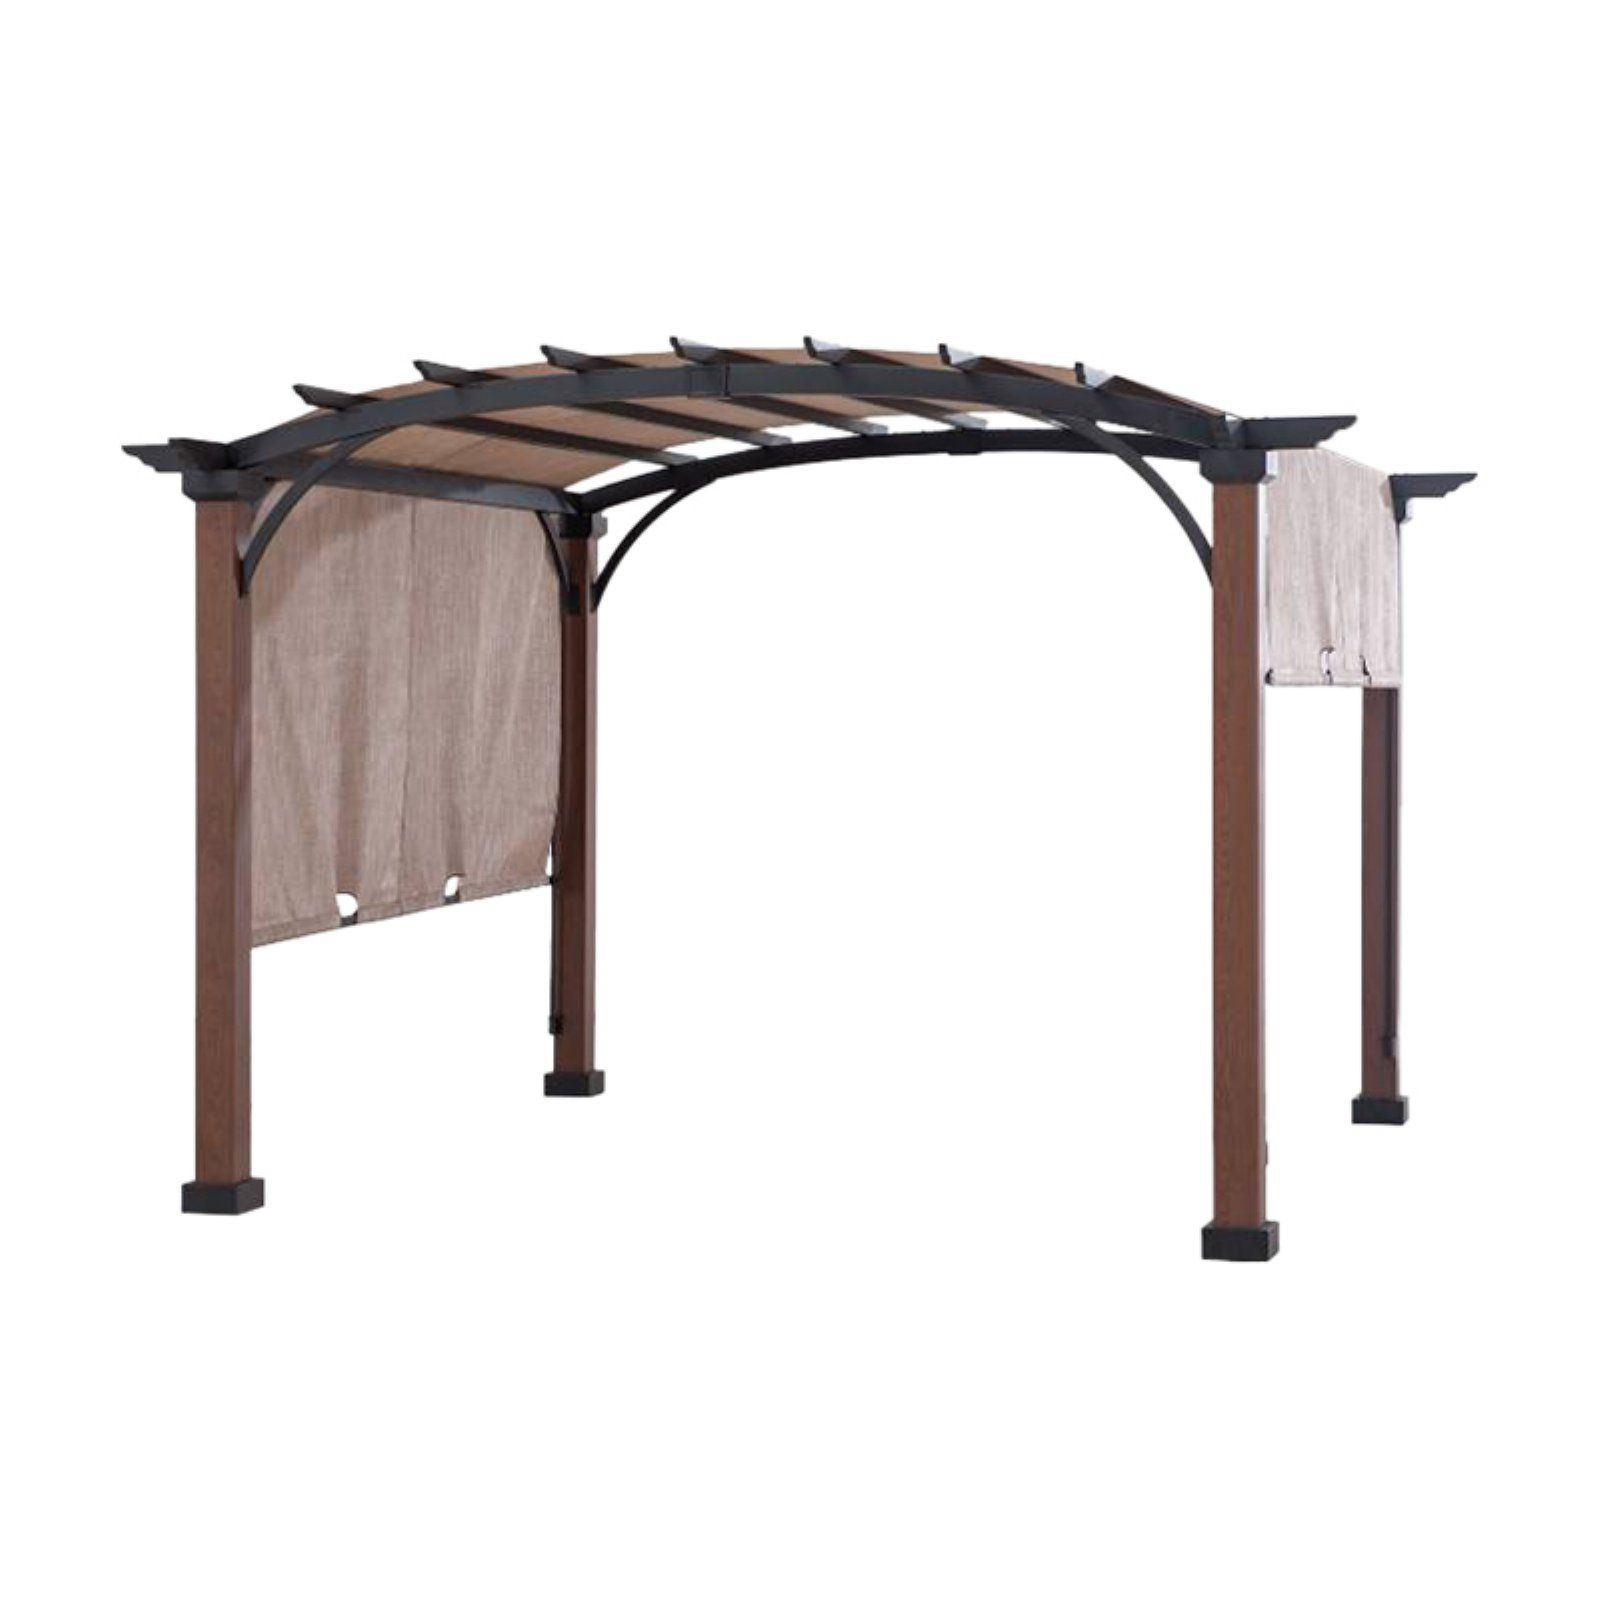 Sunjoy 10 X 10 Ft Polyester Replacement Pergola Canopy Pergola Canopy Canopy Pergola